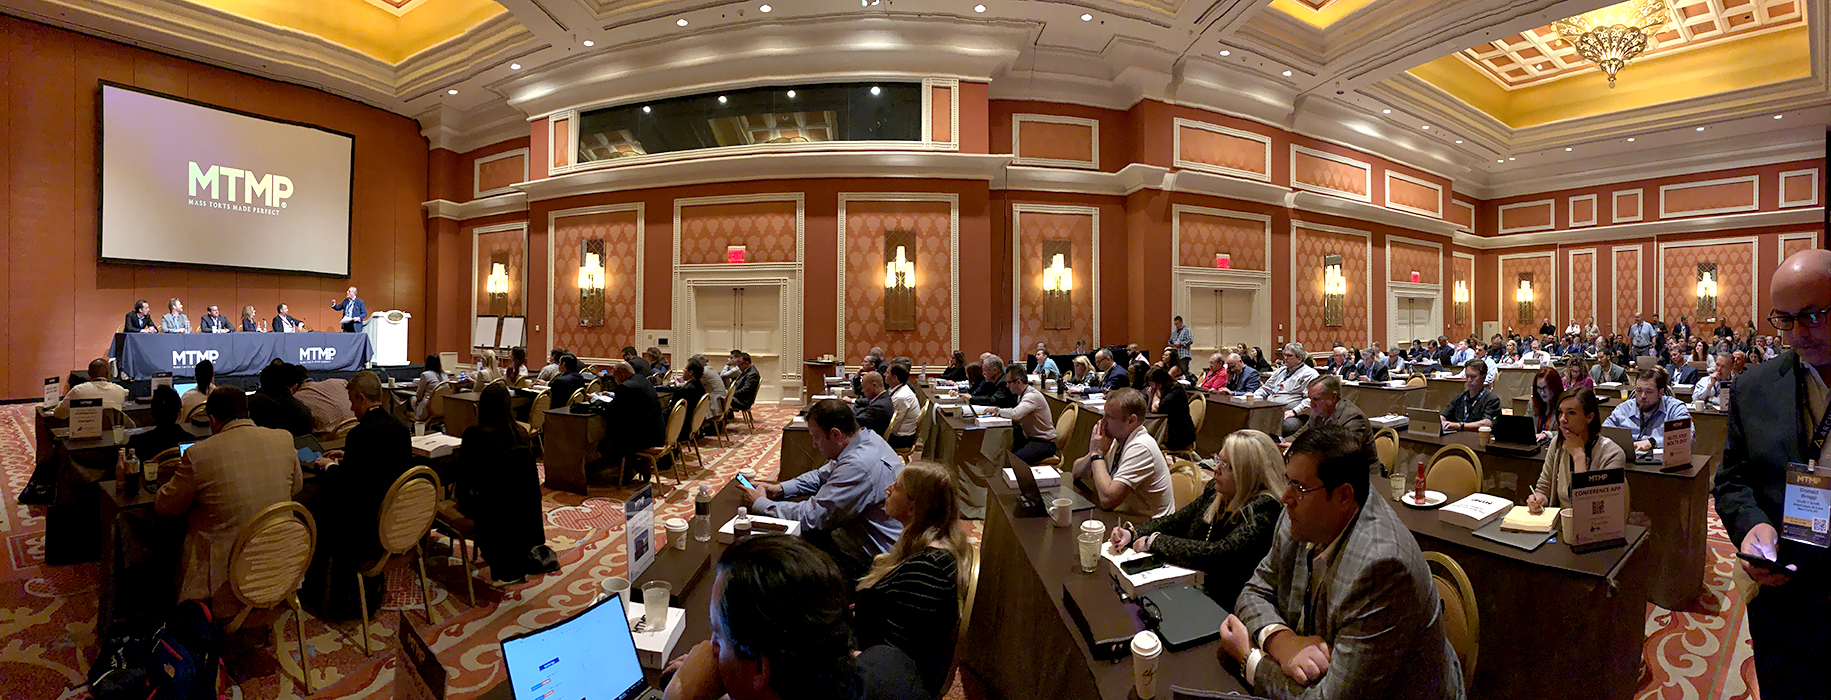 Panoramic view of a large crowd attorneys sitting in banquet room